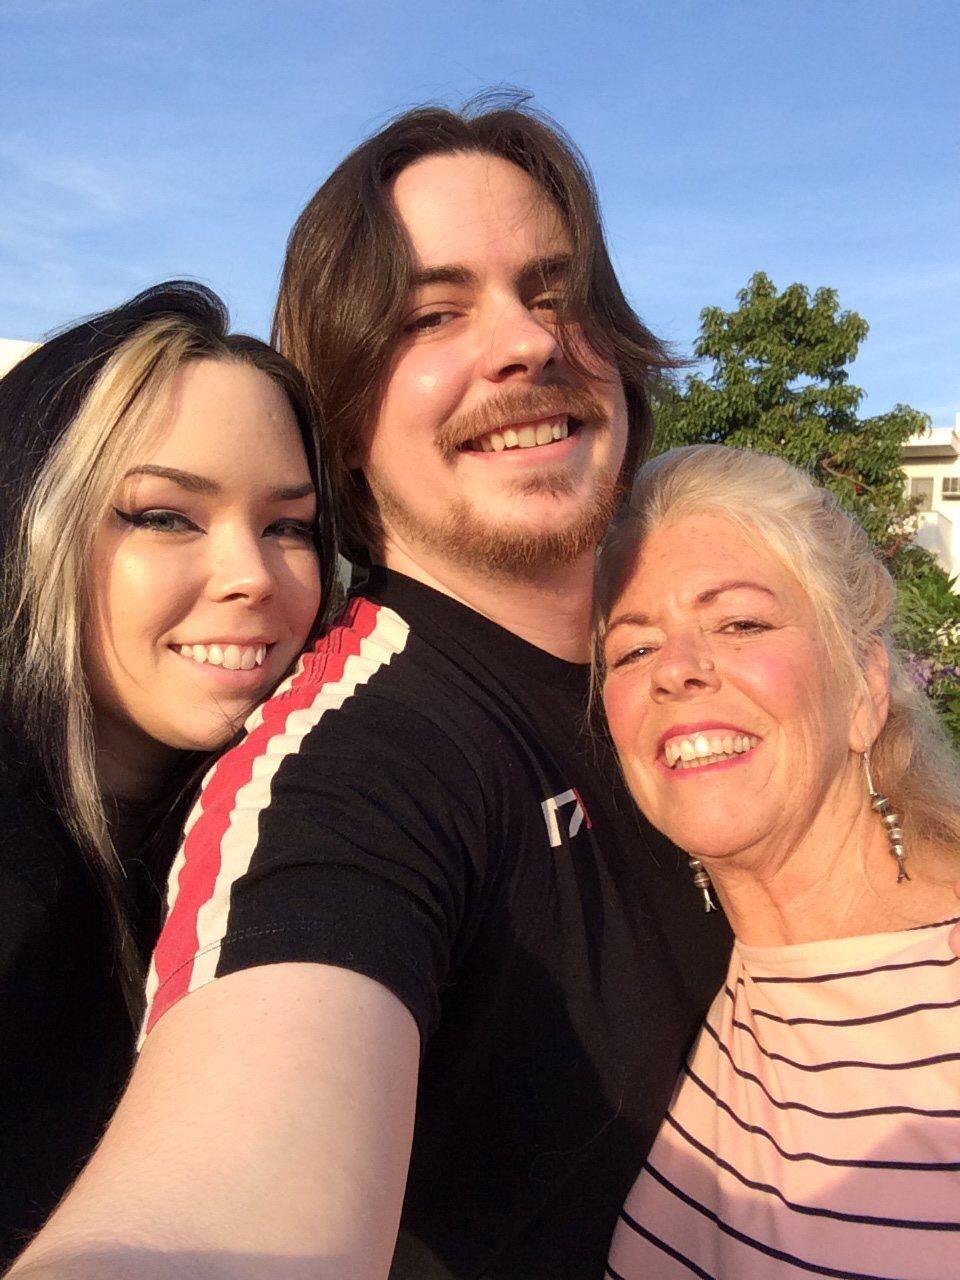 suzy arin and arin s mom game grumps pinterest games